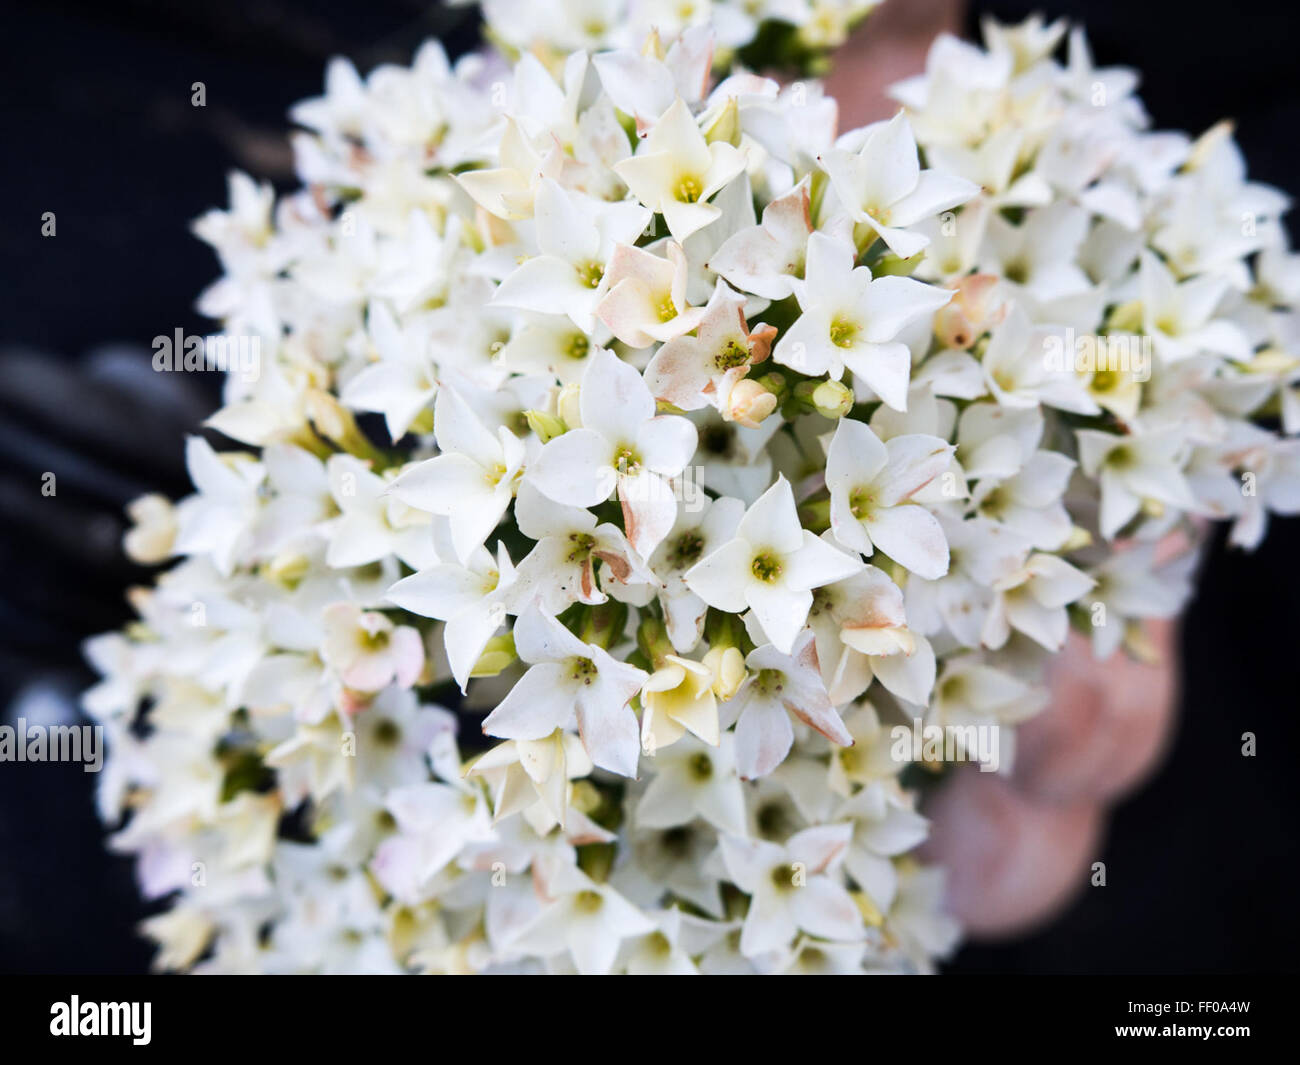 Bunch Of Small White Flowers Bunch Of Small White Flower Stock Photo